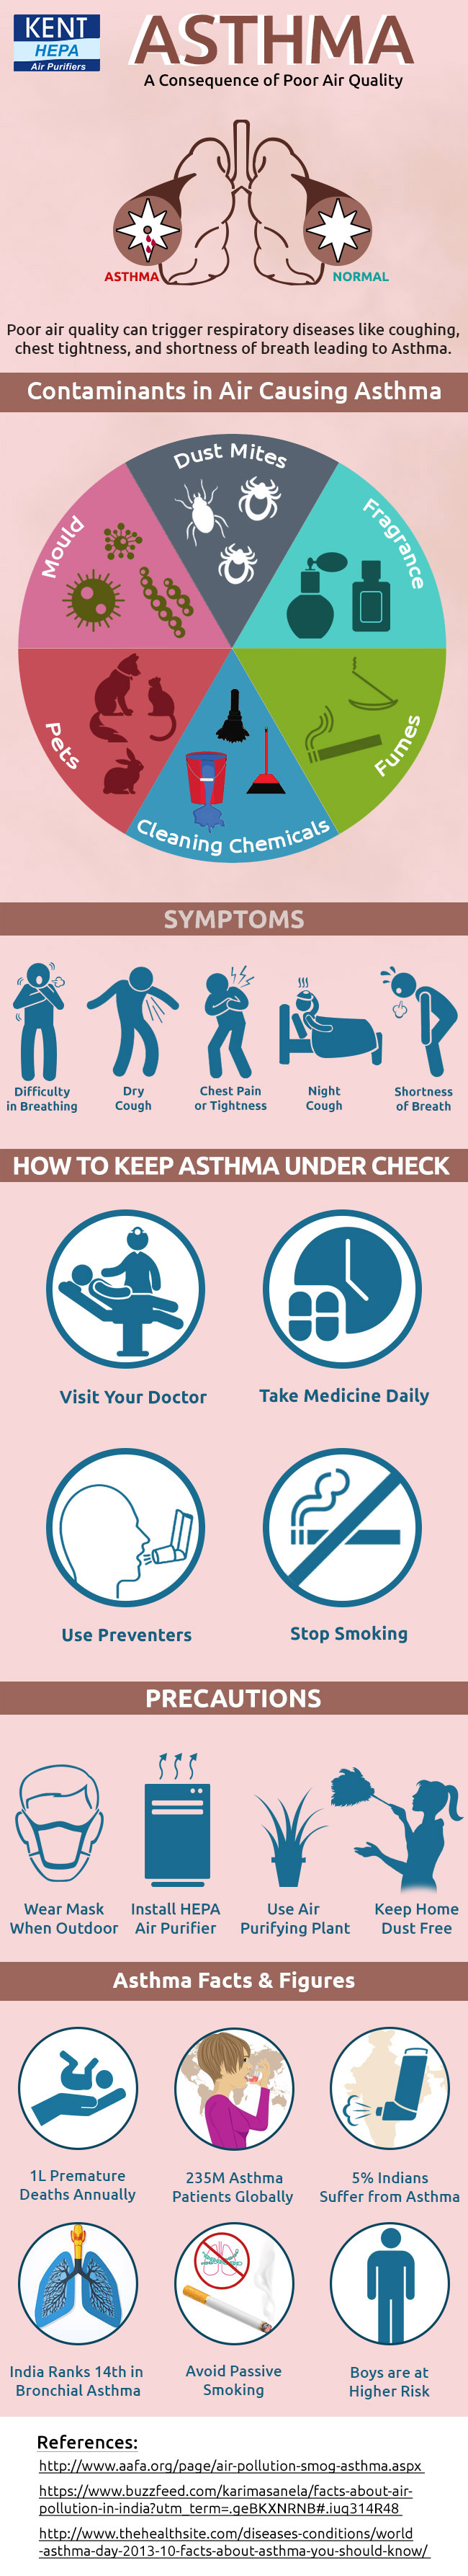 Asthma - The Consequence of Poor Air Quality | Infographic